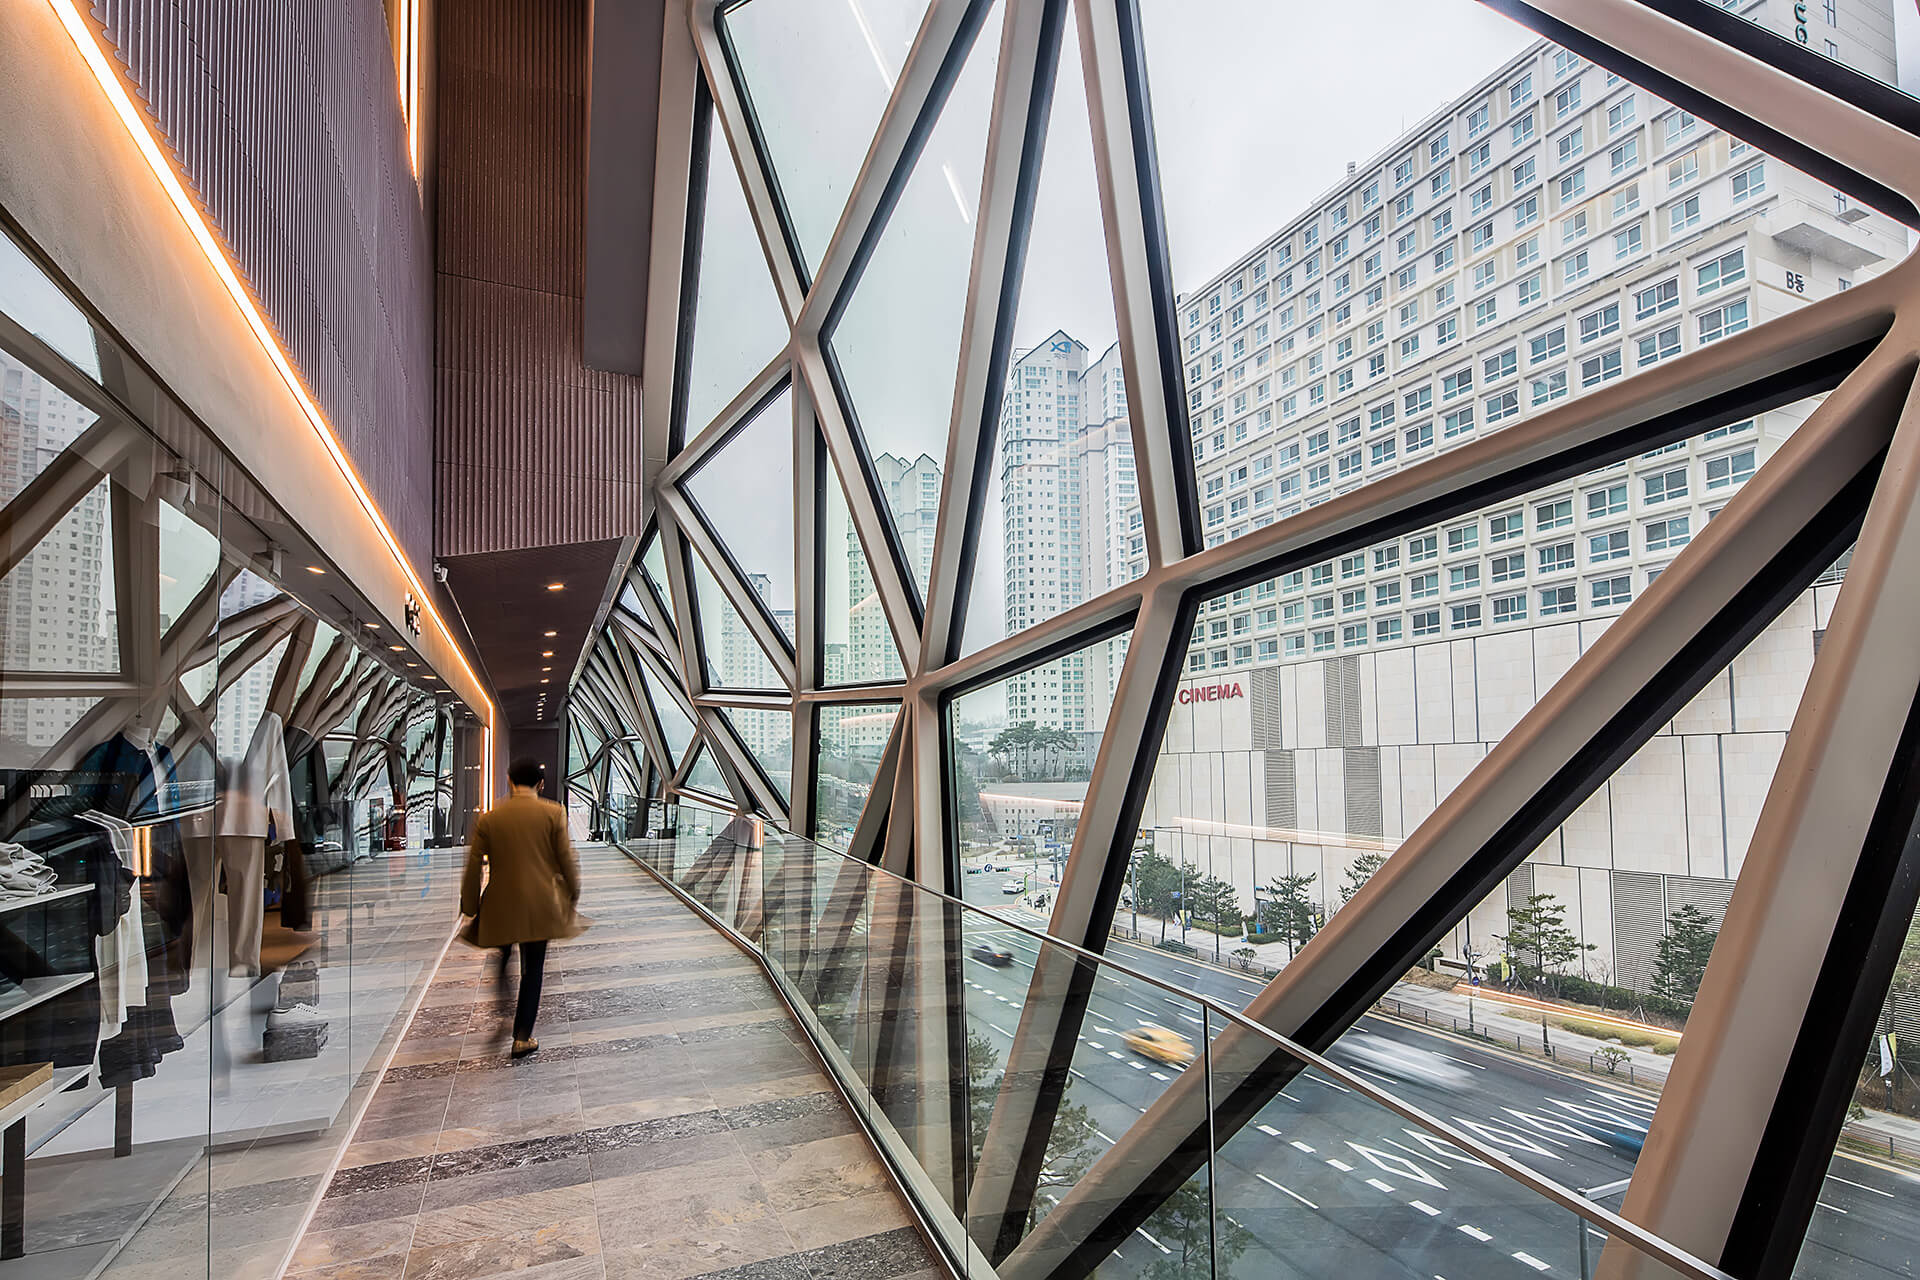 Inside the 'Public Loop' – the glass route inside the retail store | Galleria in Gwanggyo by OMA | STIRworld